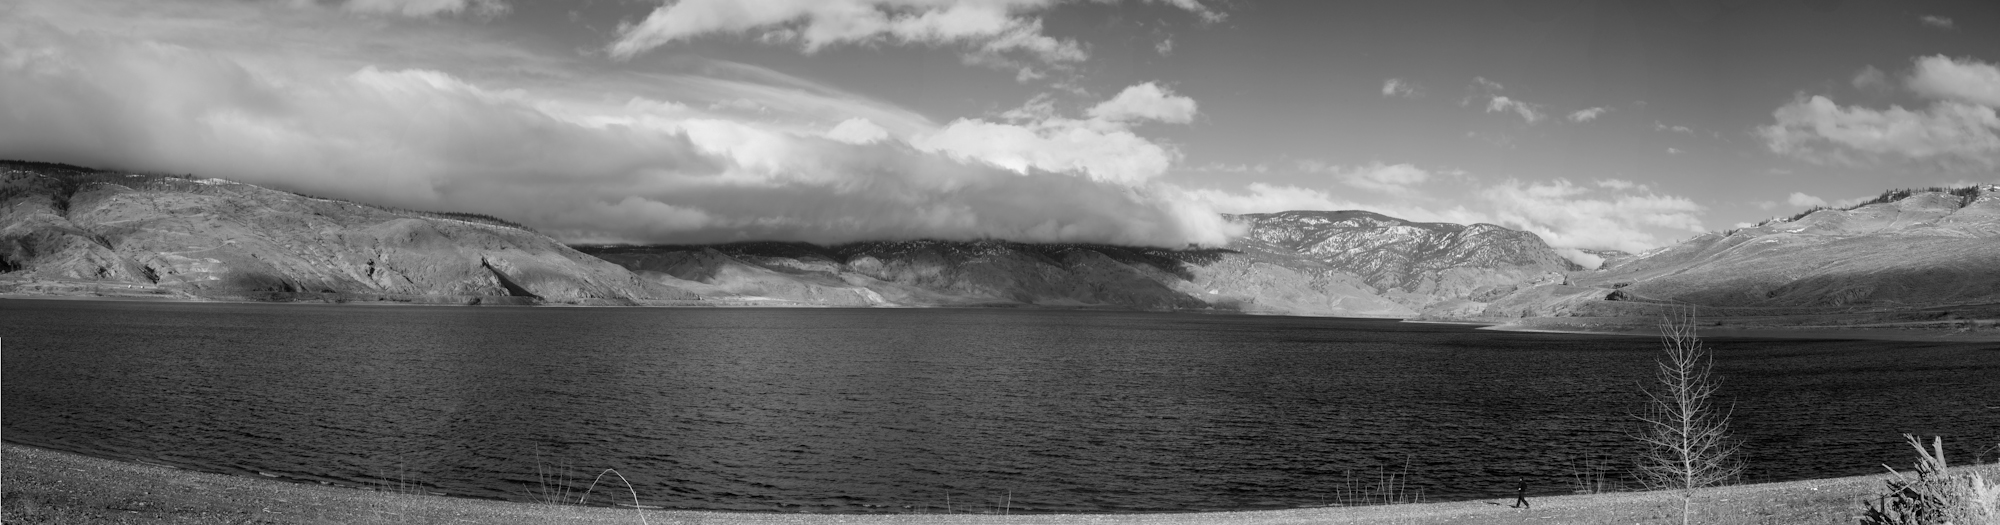 kamloops-lake-1